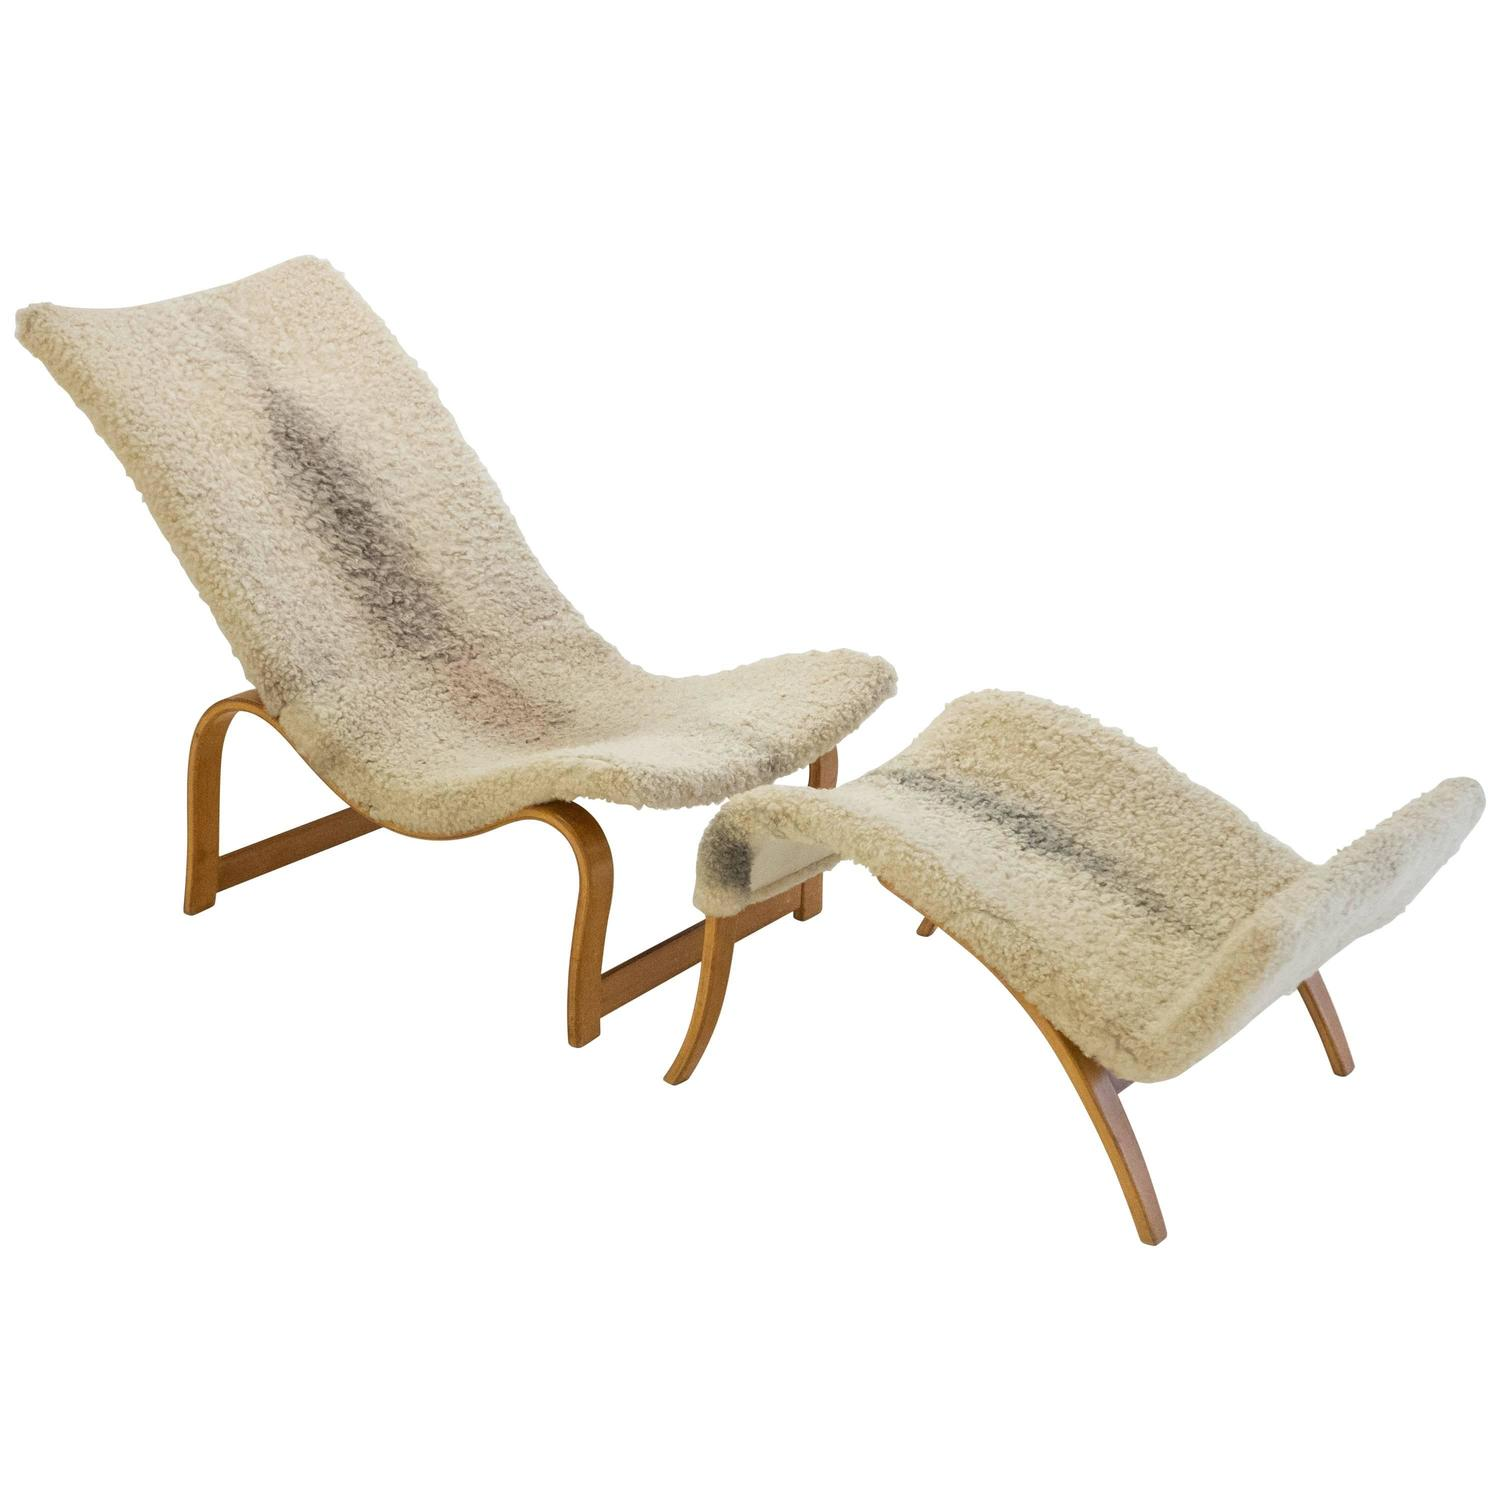 Early and Rare Bruno Mathsson Model 36 Easy Chair with Footrest